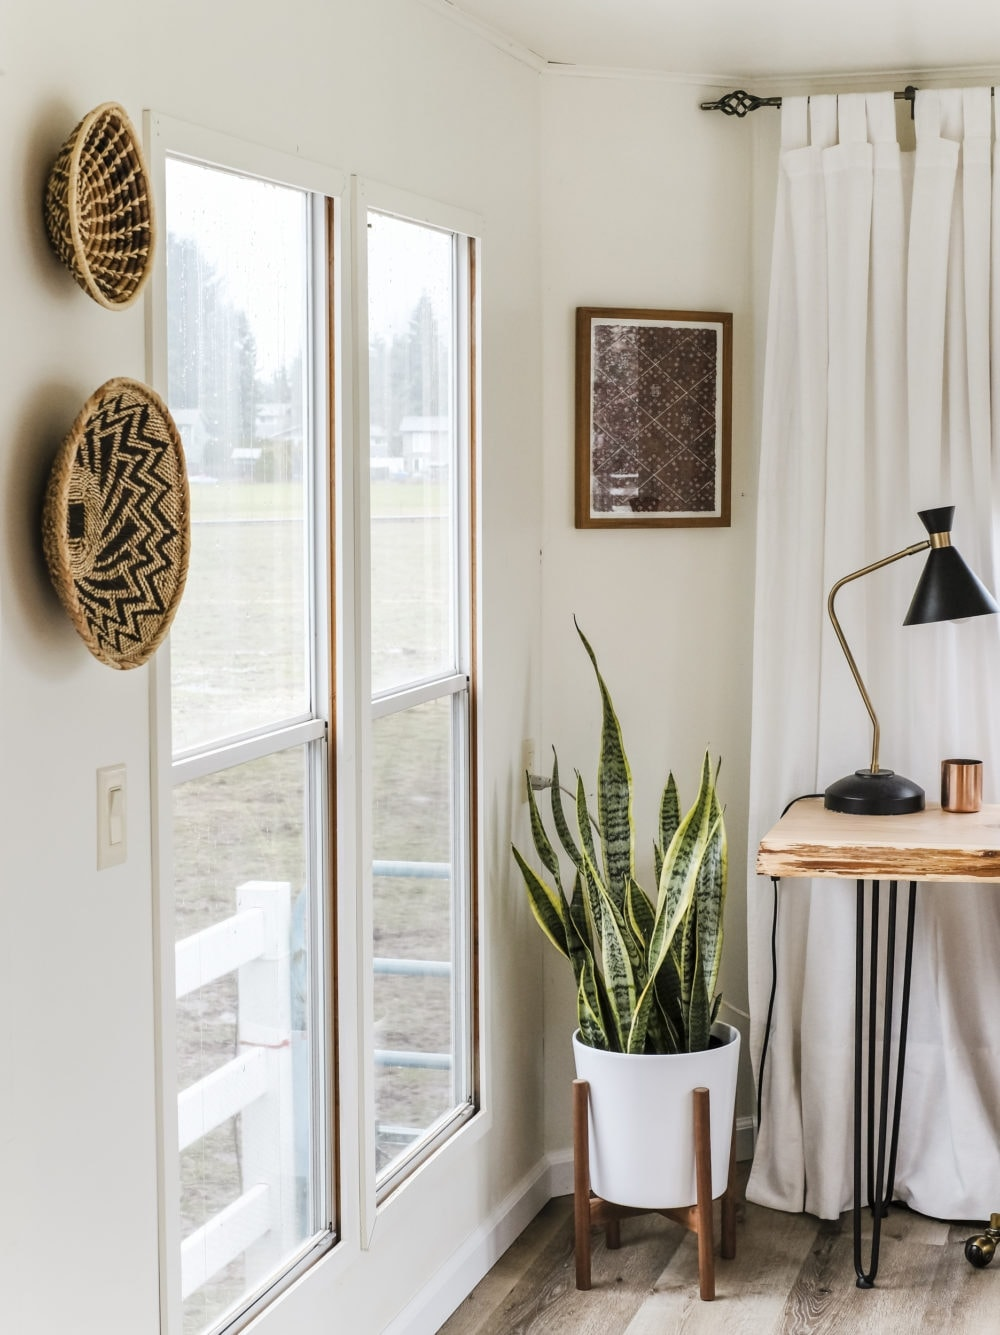 Home office inspiration with woven baskets on the wall and a snake plant in the corner